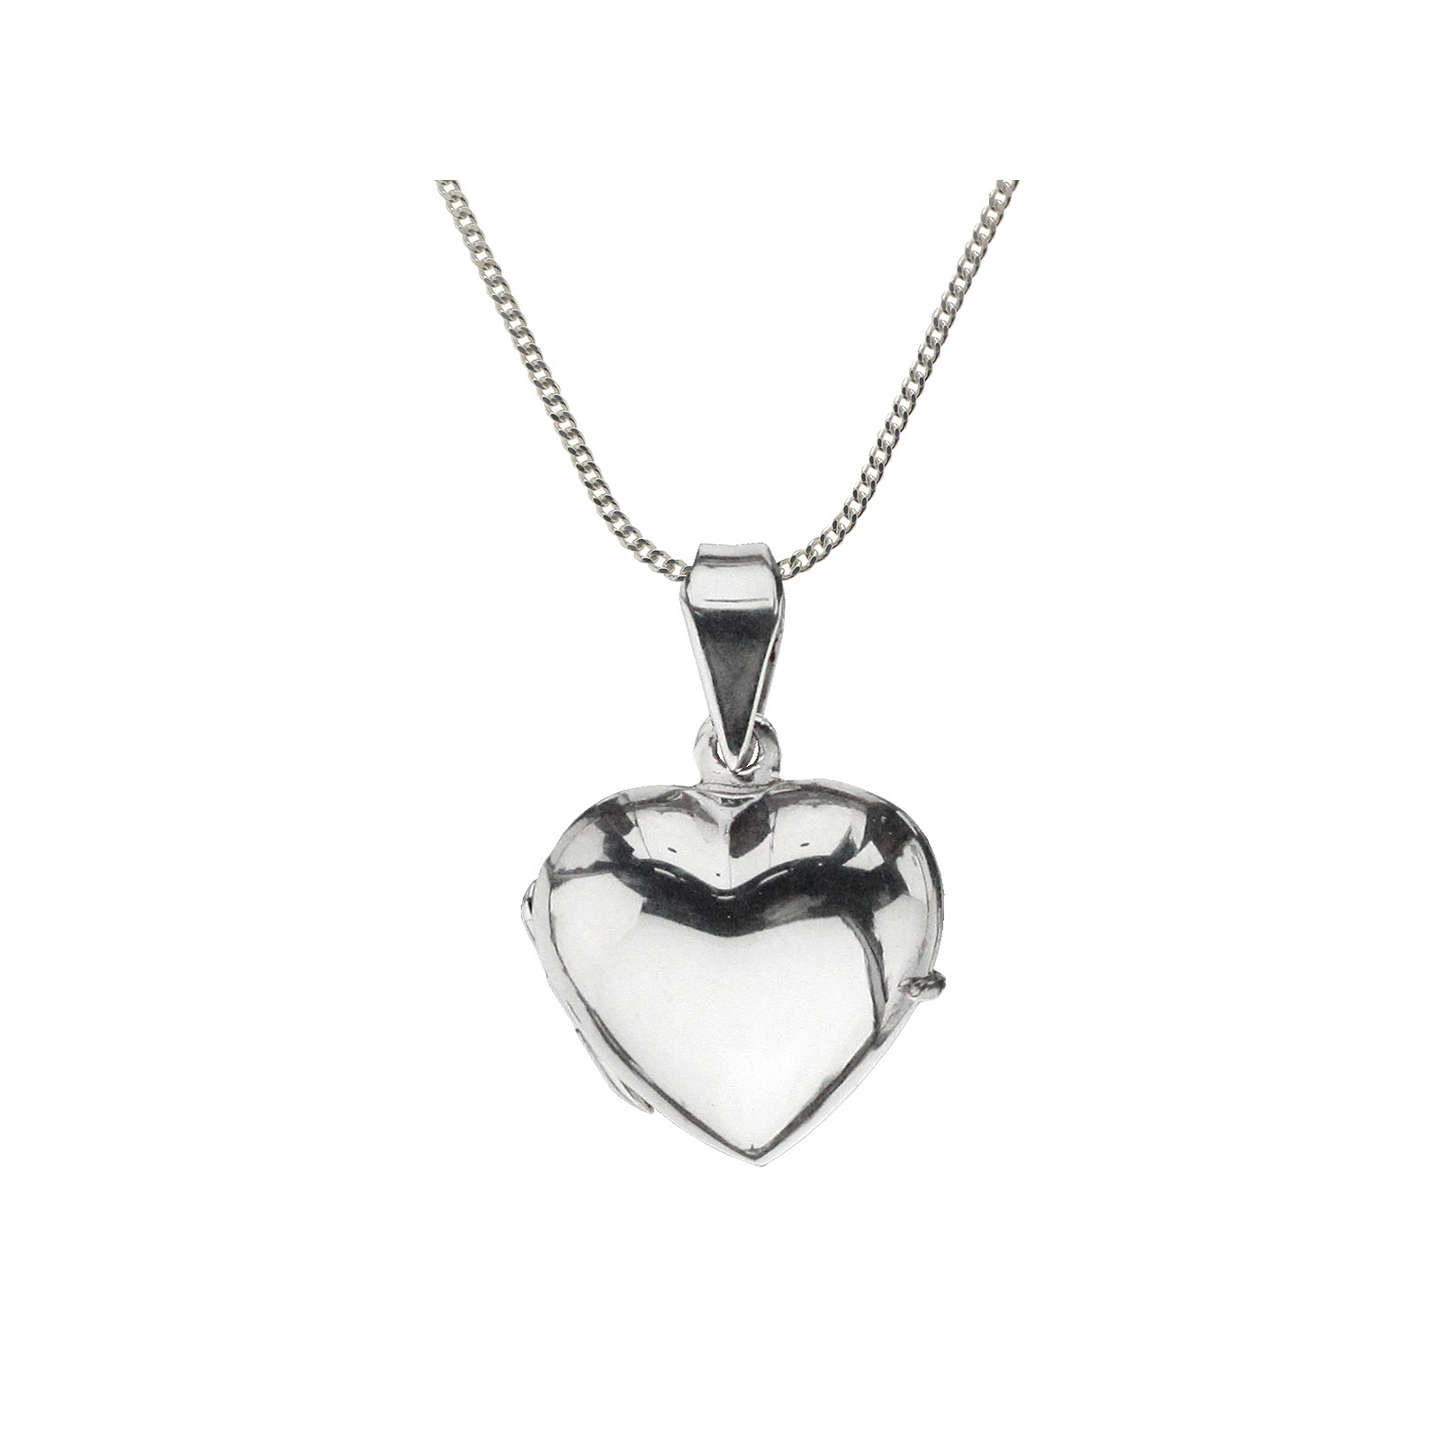 necklaces product dhl bitch necklace friend wholesale by shaped costume friends best broken pendant heart friendship fashion